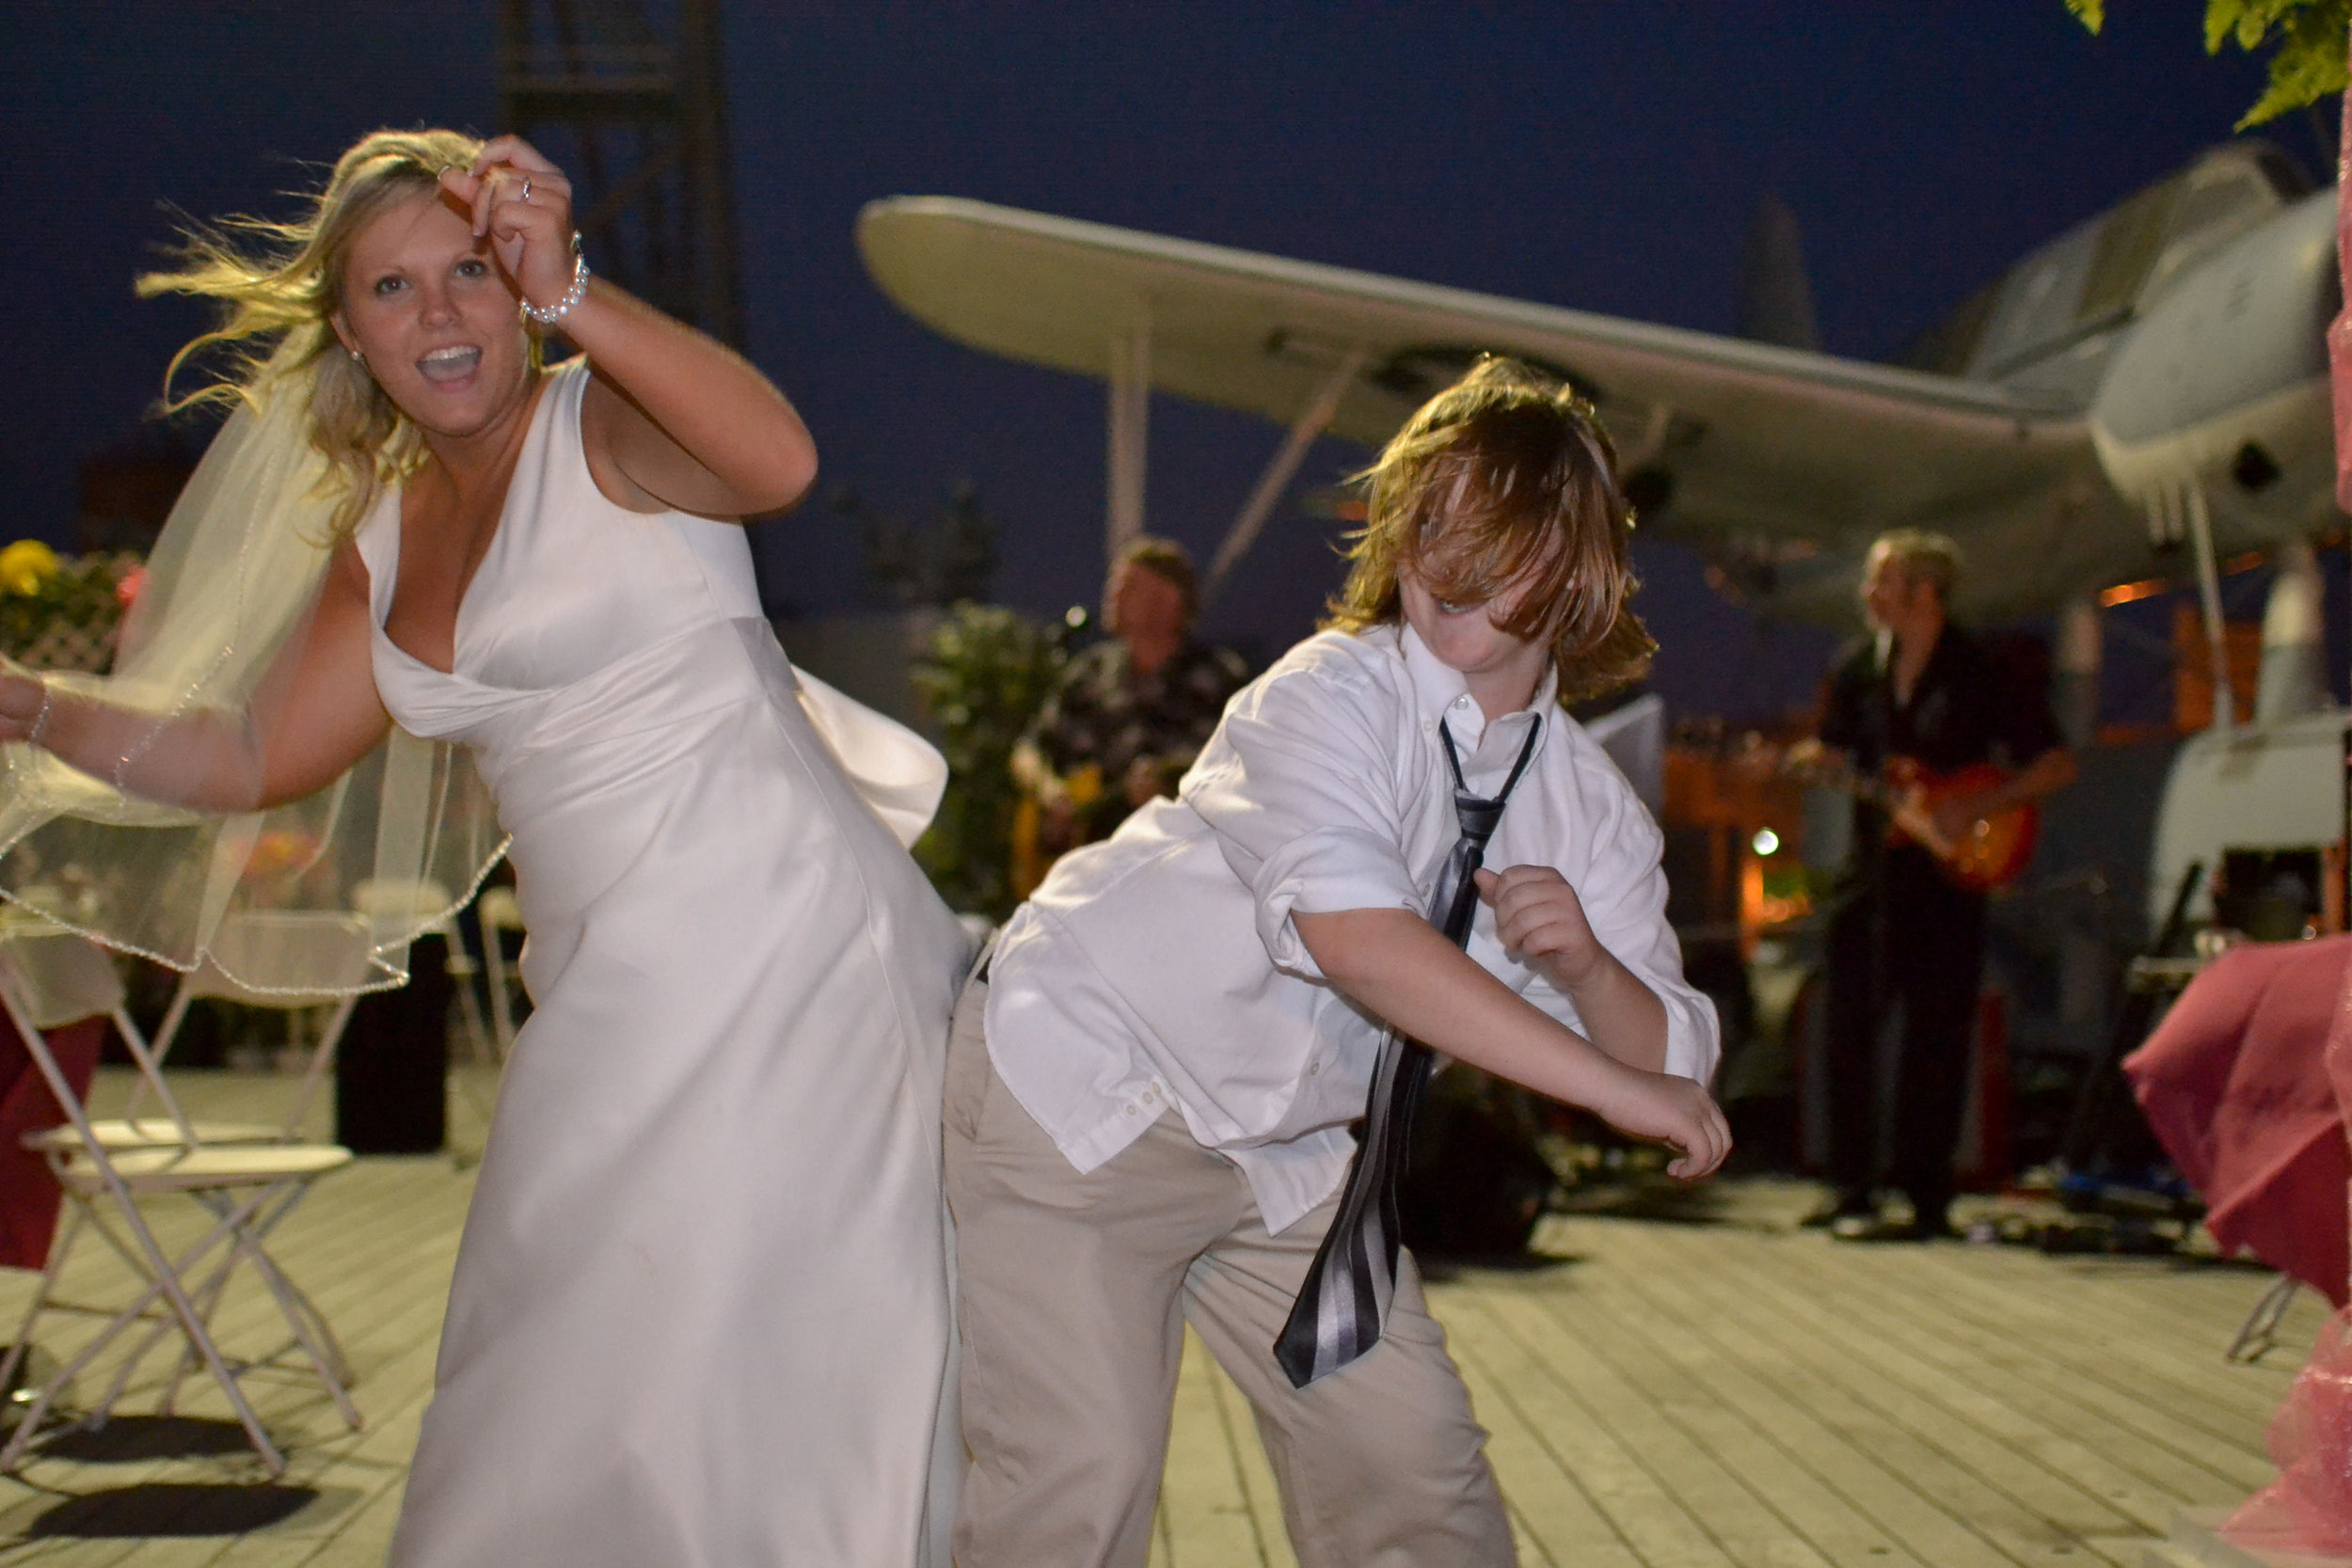 Bride dancing with guest.